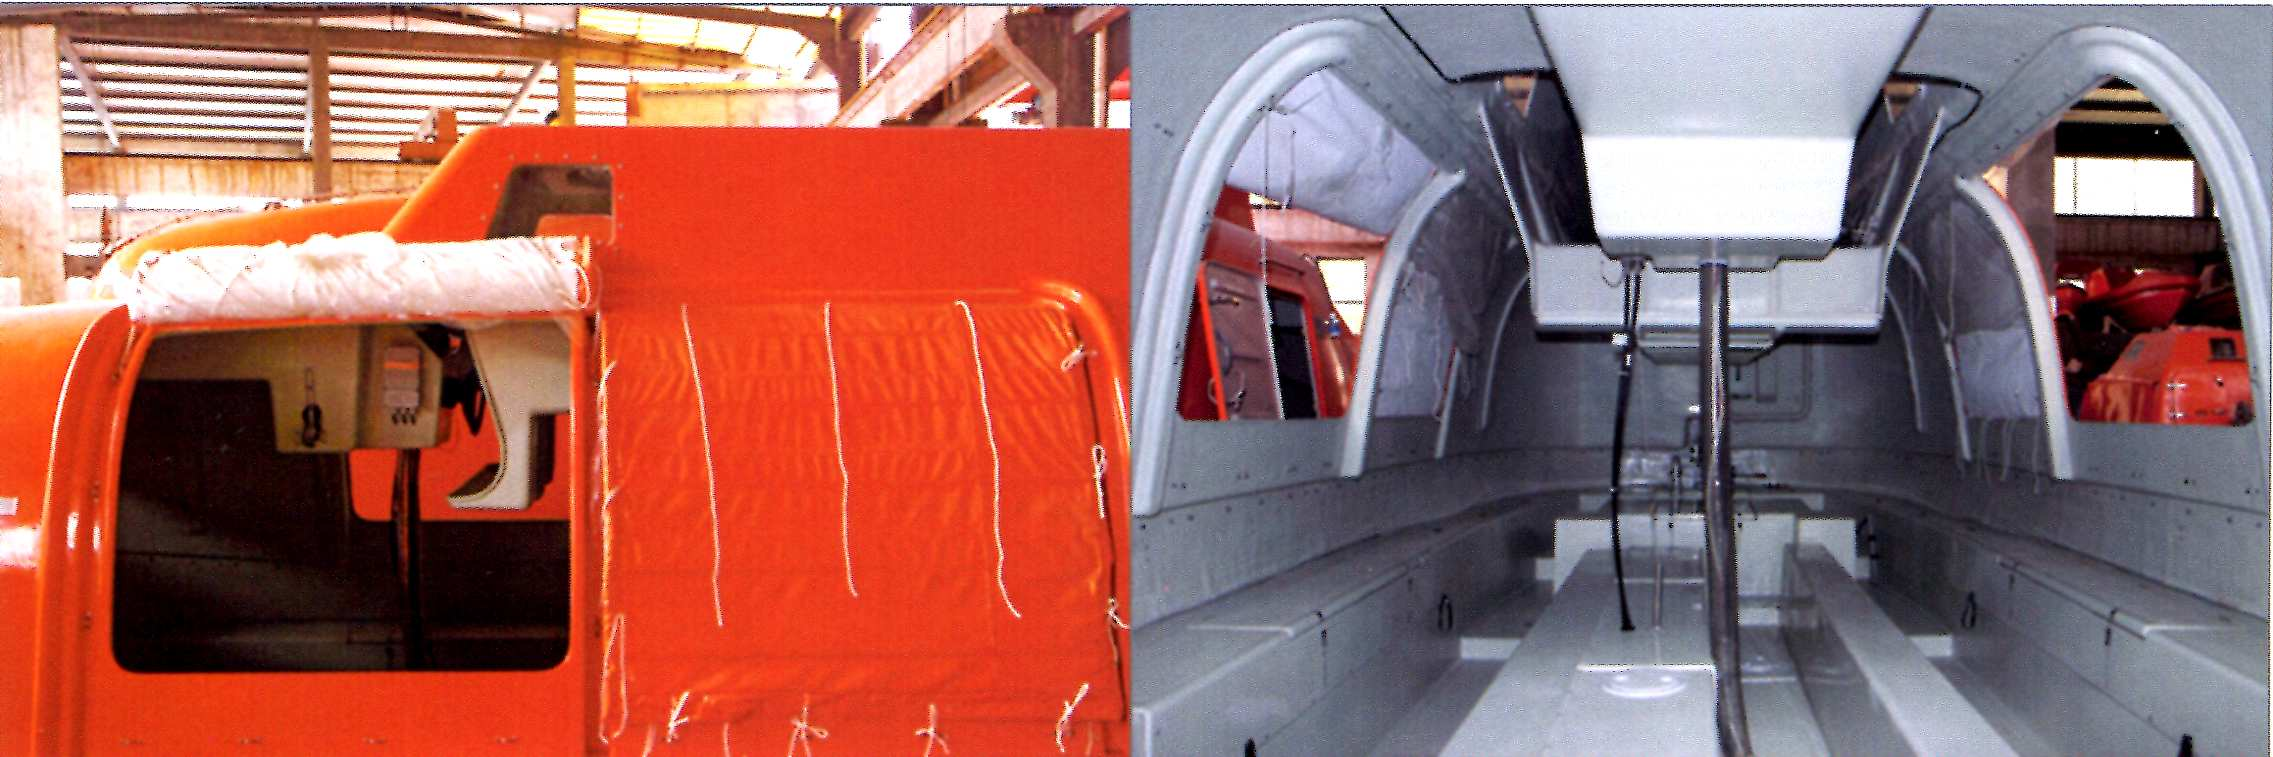 partially enclosed lifeboat